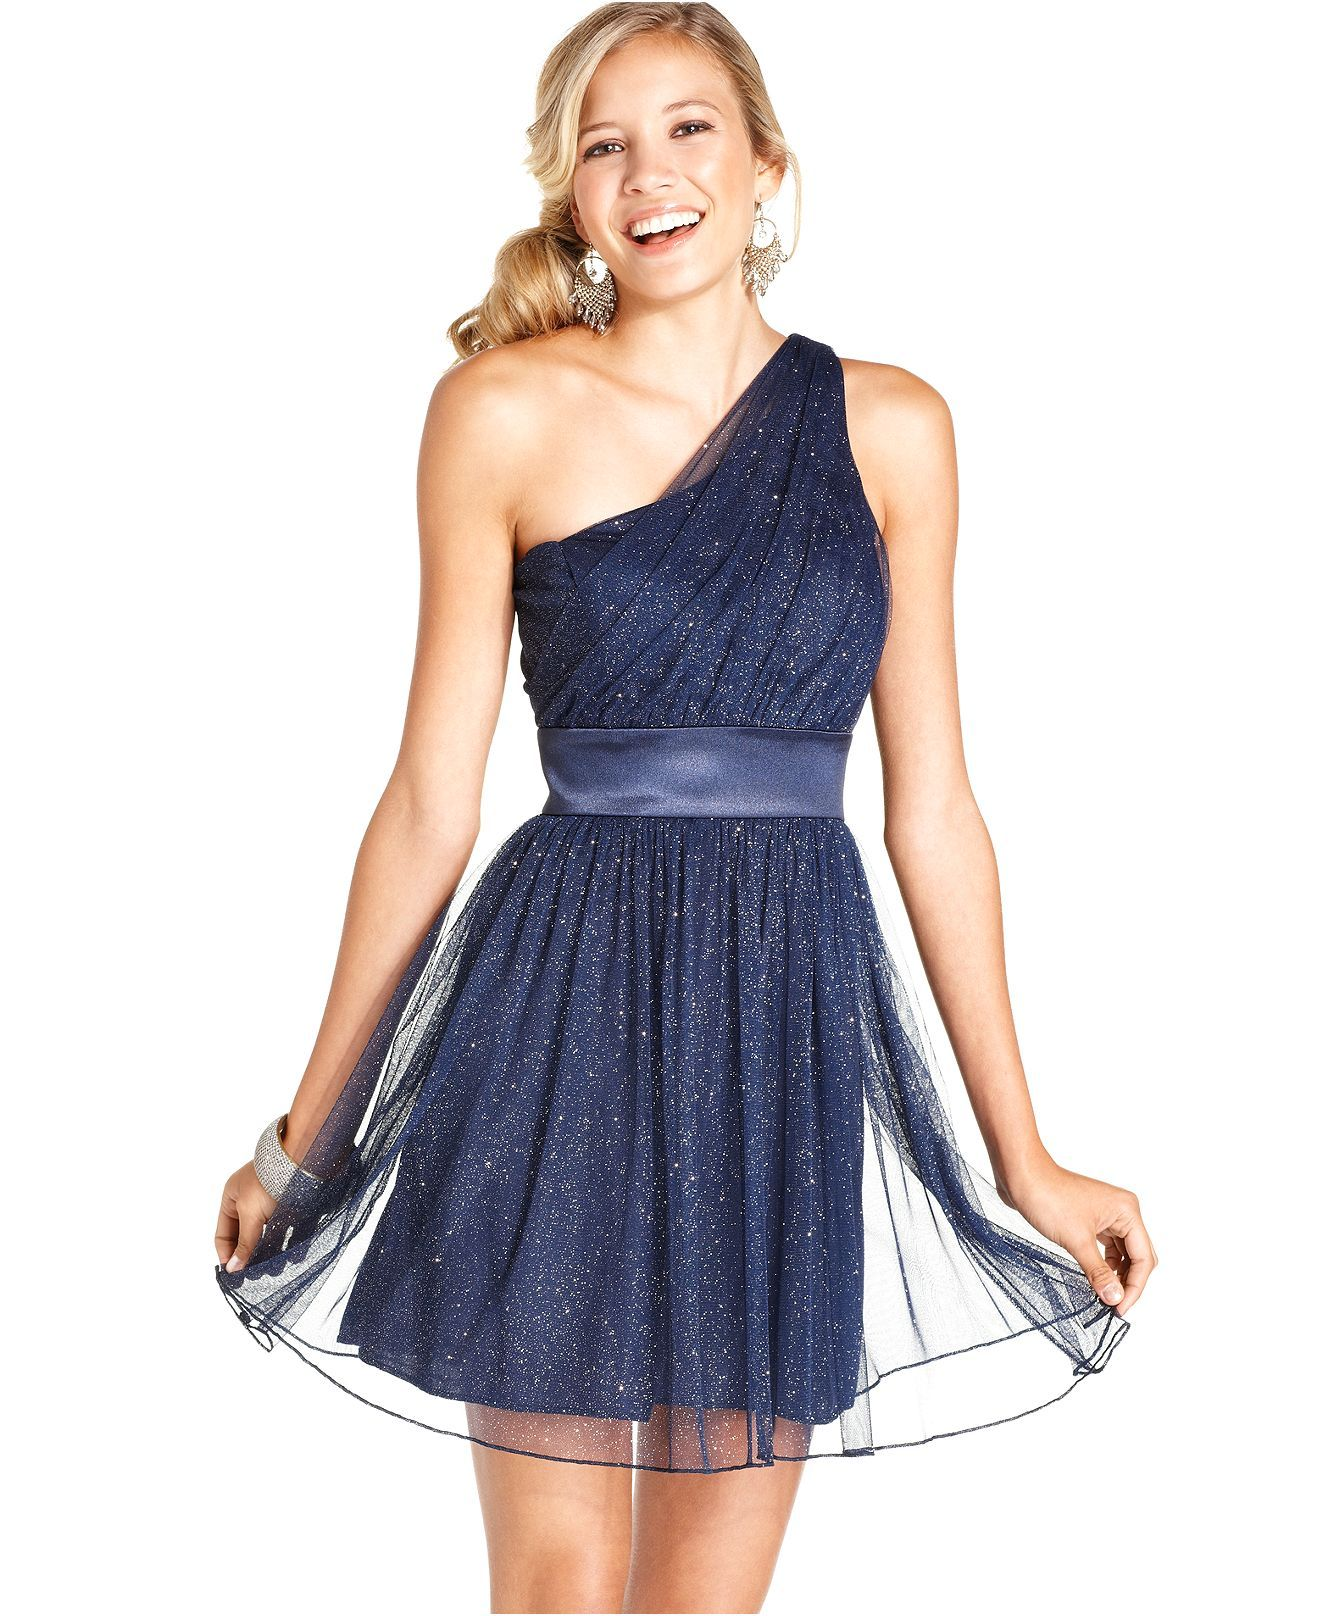 0f331c5cb Trixxi Juniors Dress, Sleeveless Glitter One-Shoulder - Juniors Dresses -  Macy's